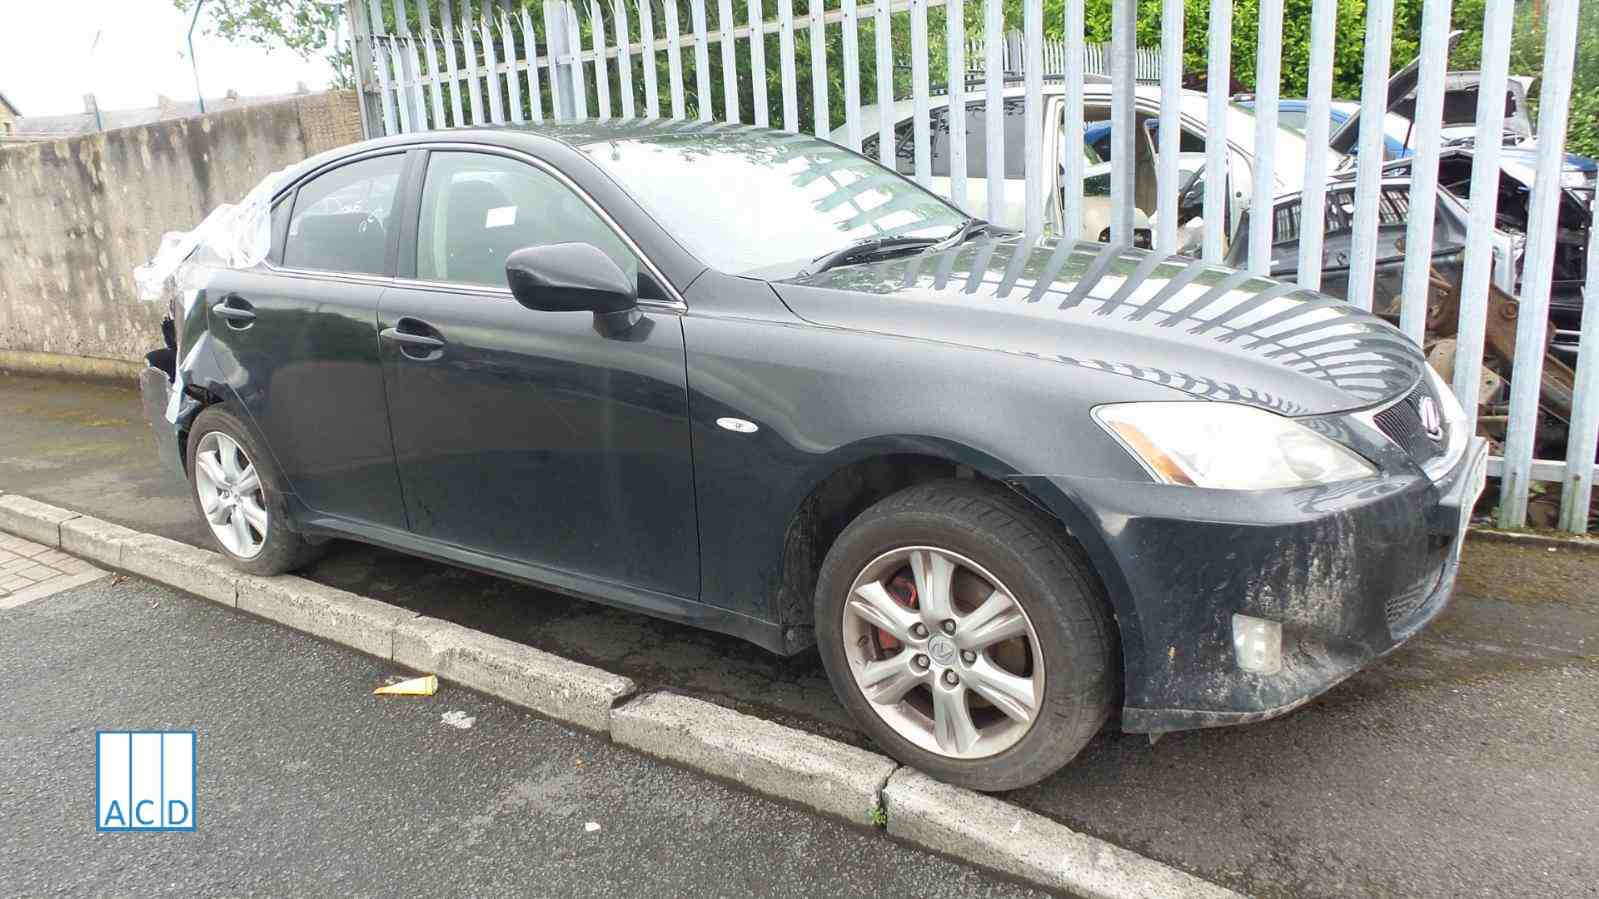 LEXUS IS220D used parts for sale